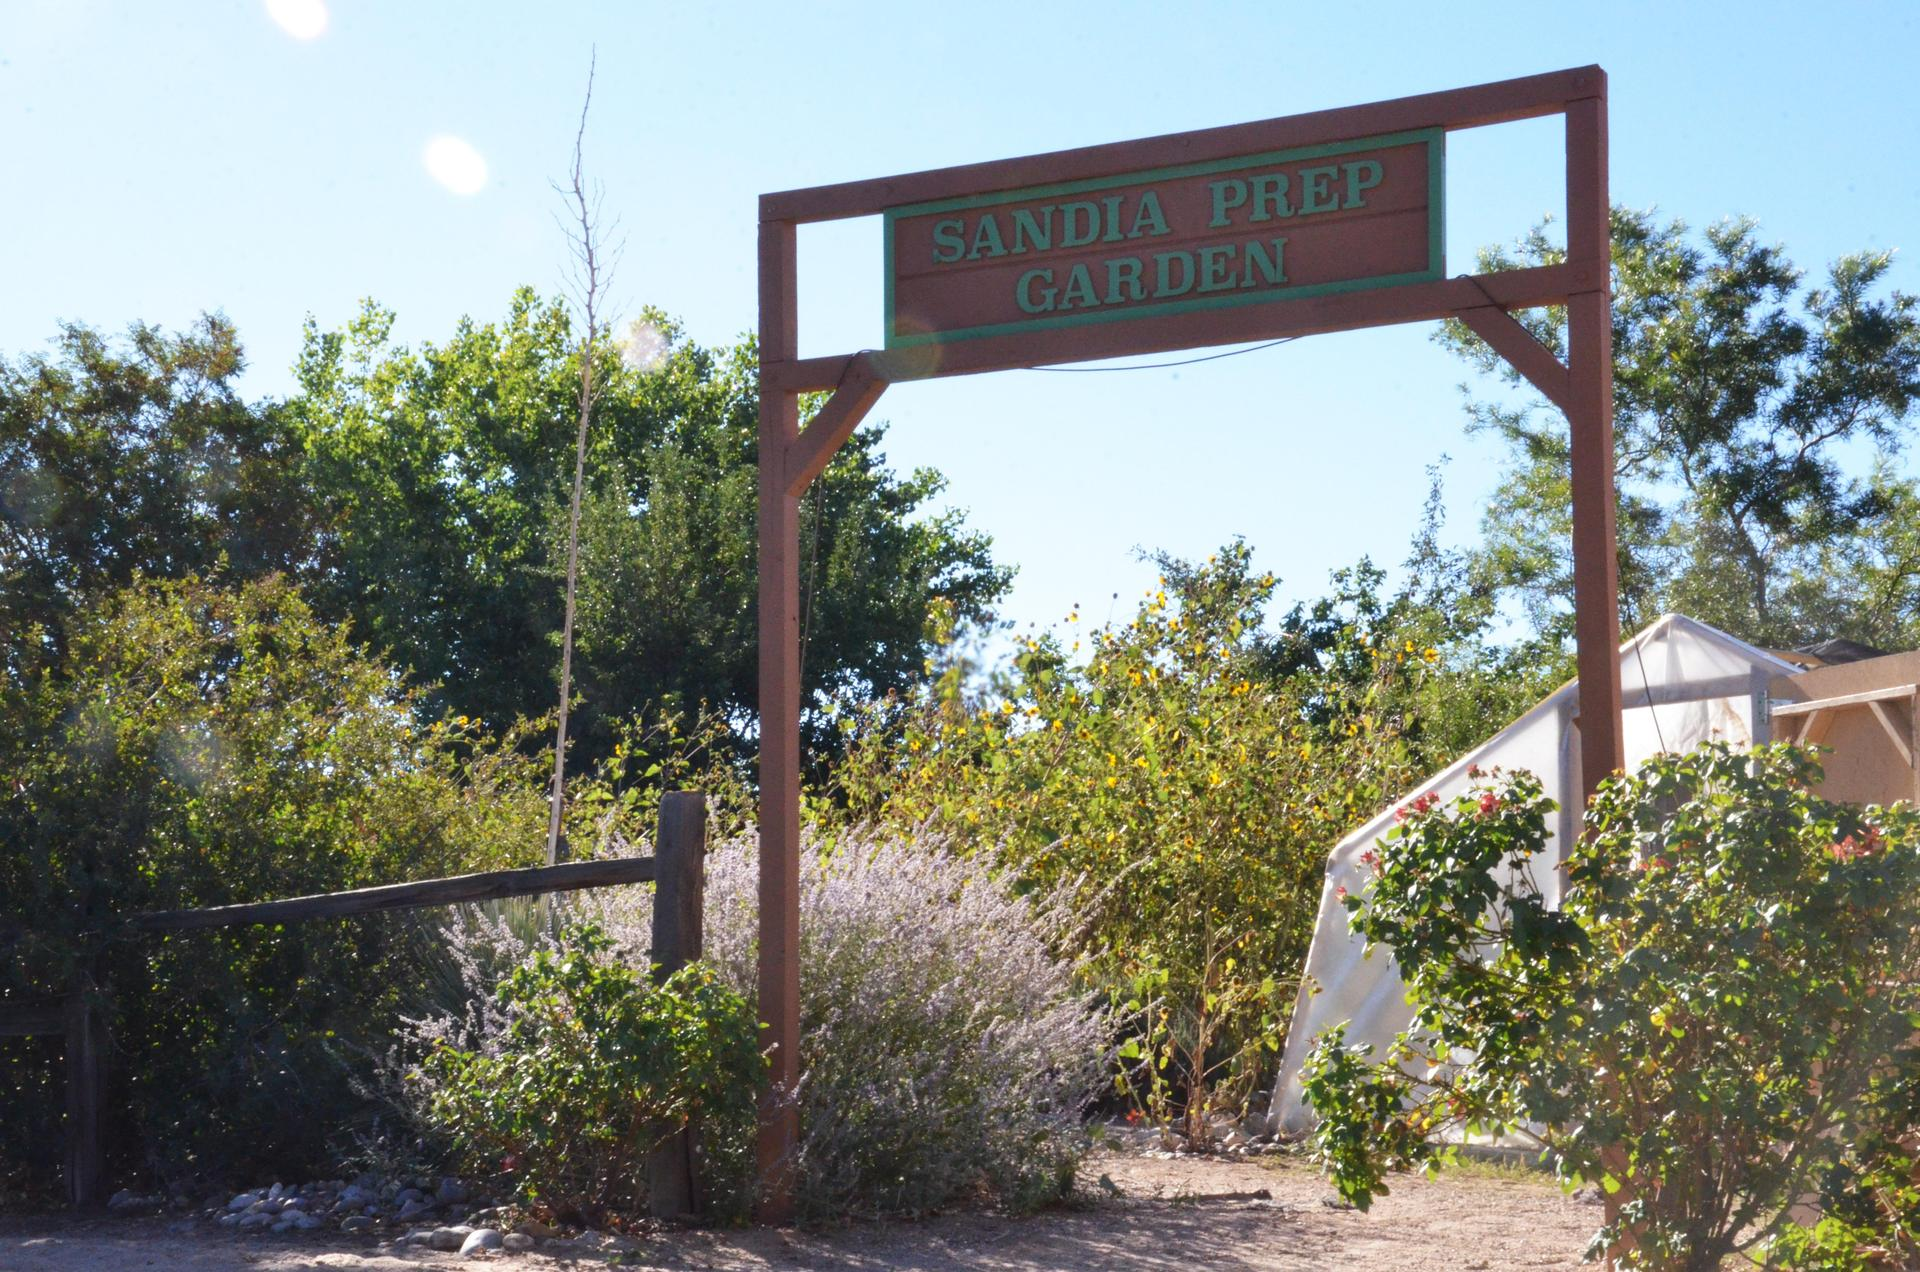 Entrance of Sandia Prep garden with welcome sign